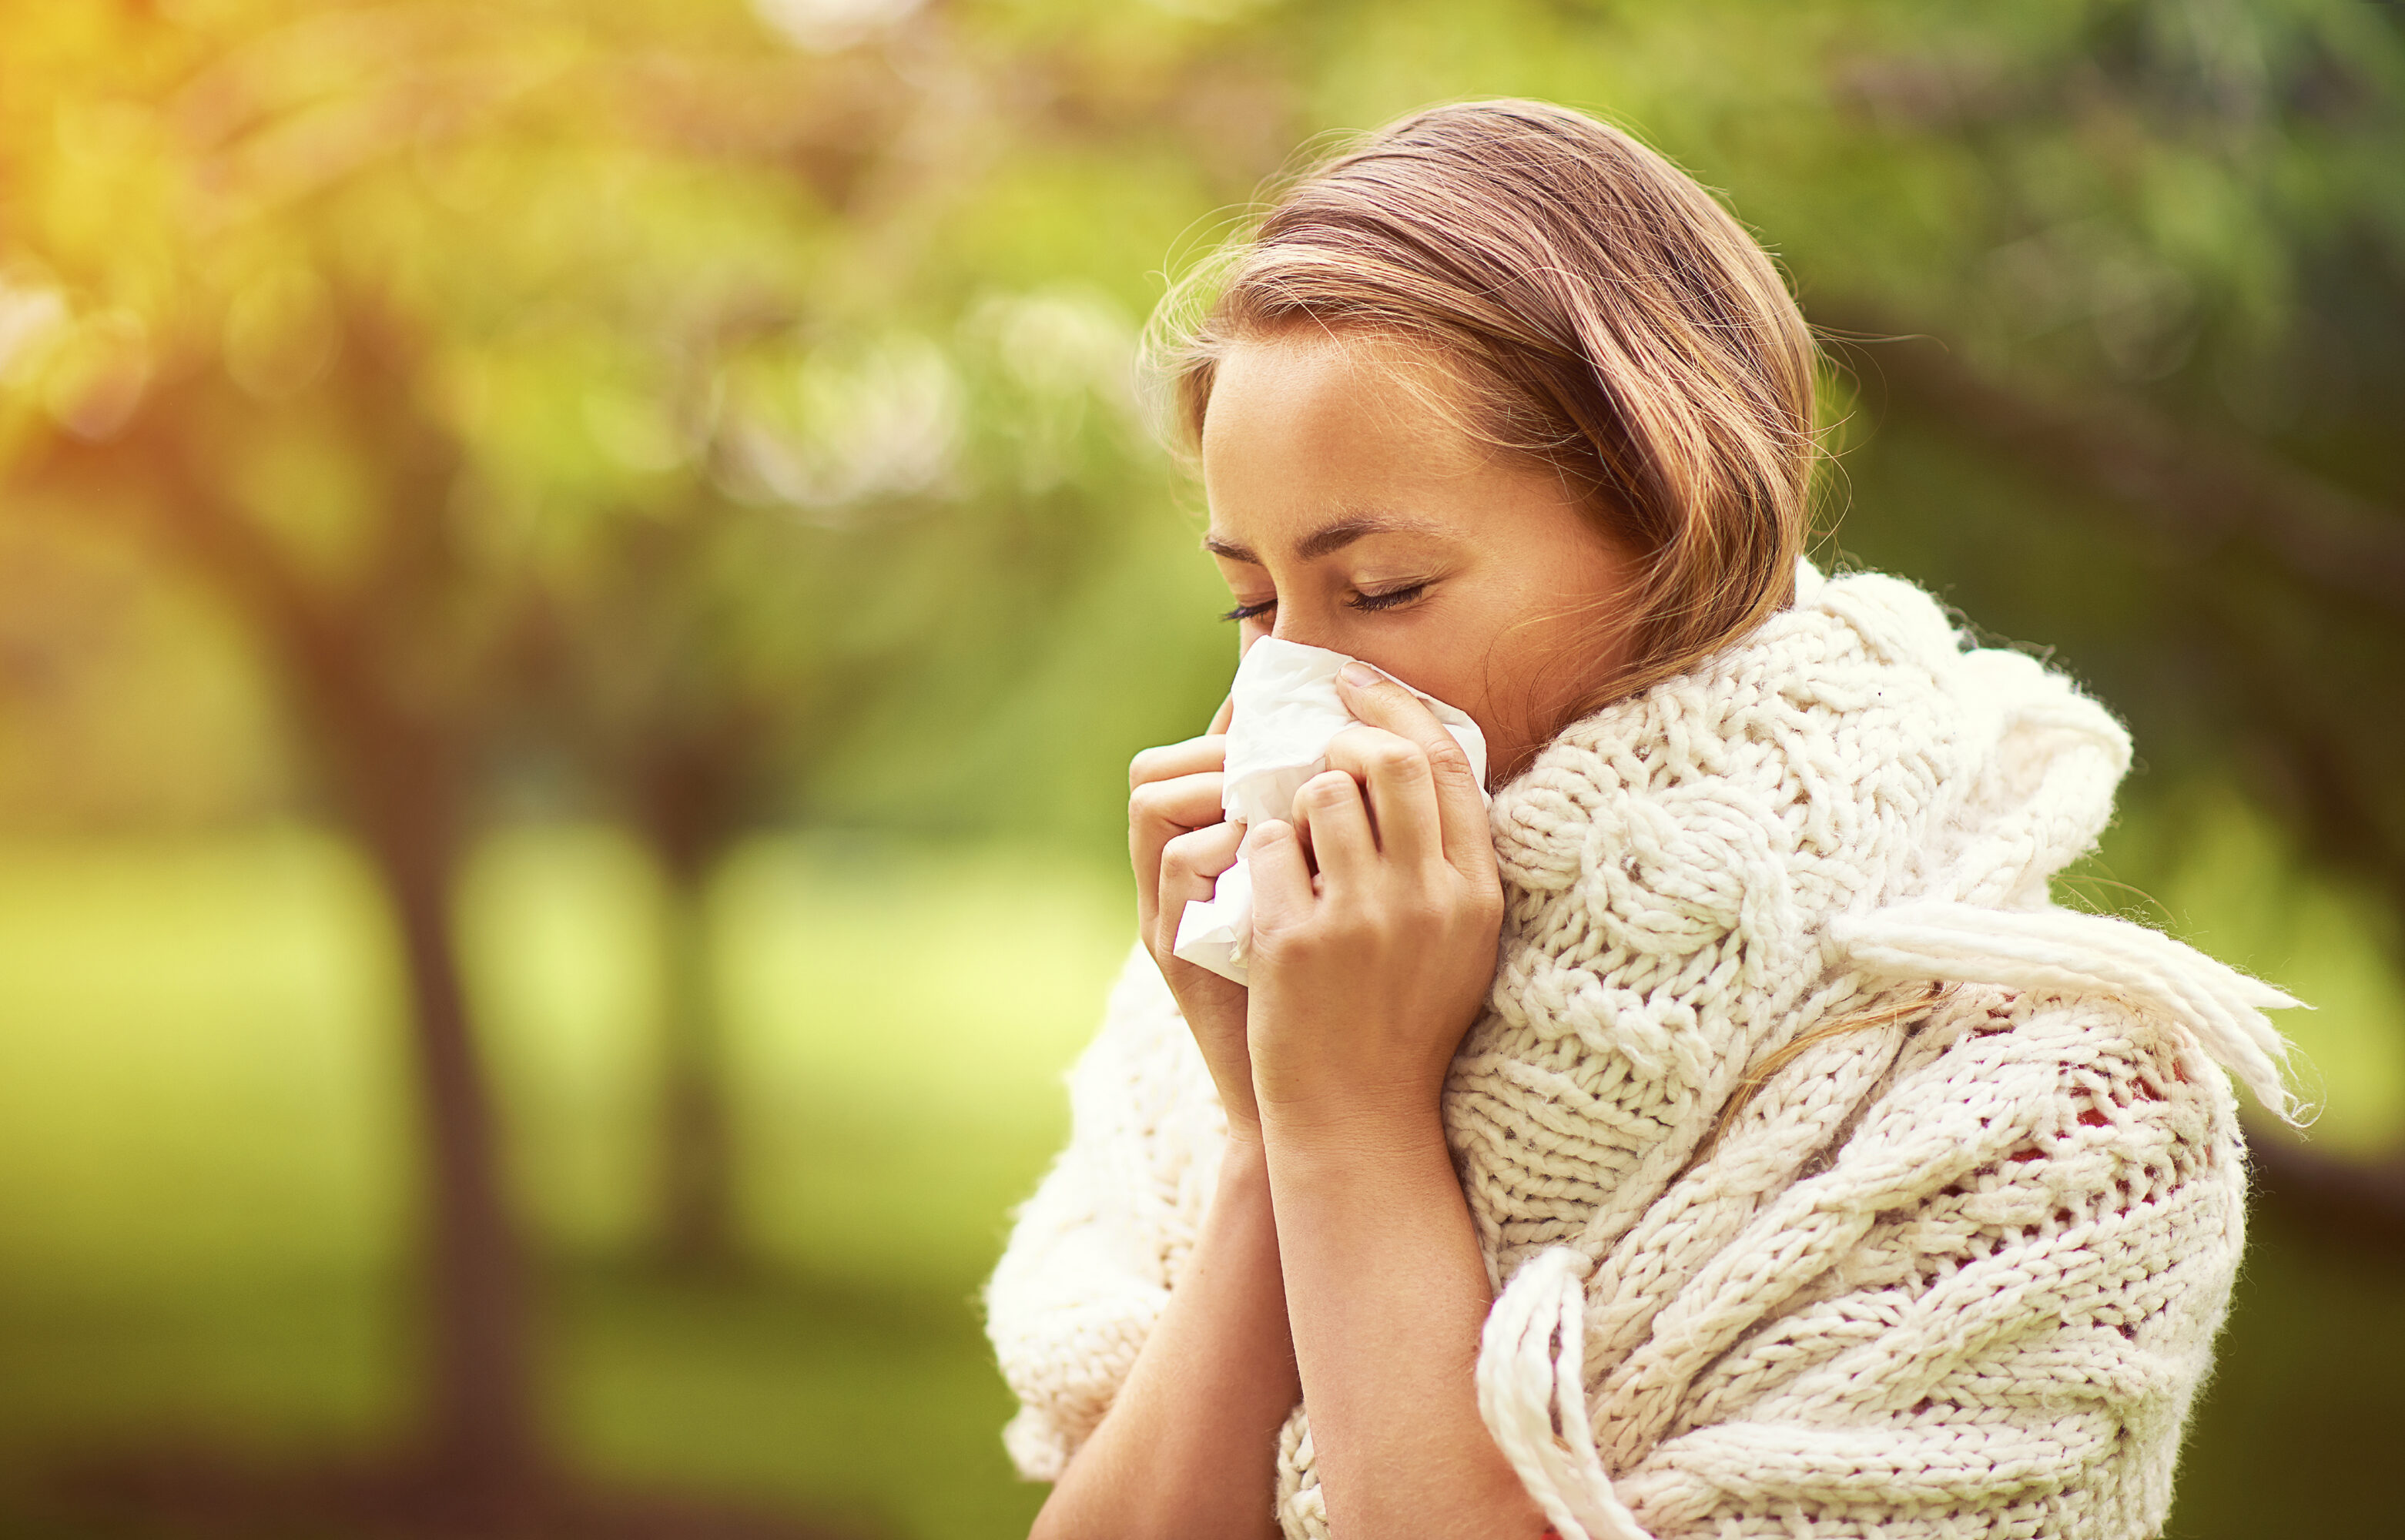 Treating your allergy: natural tips